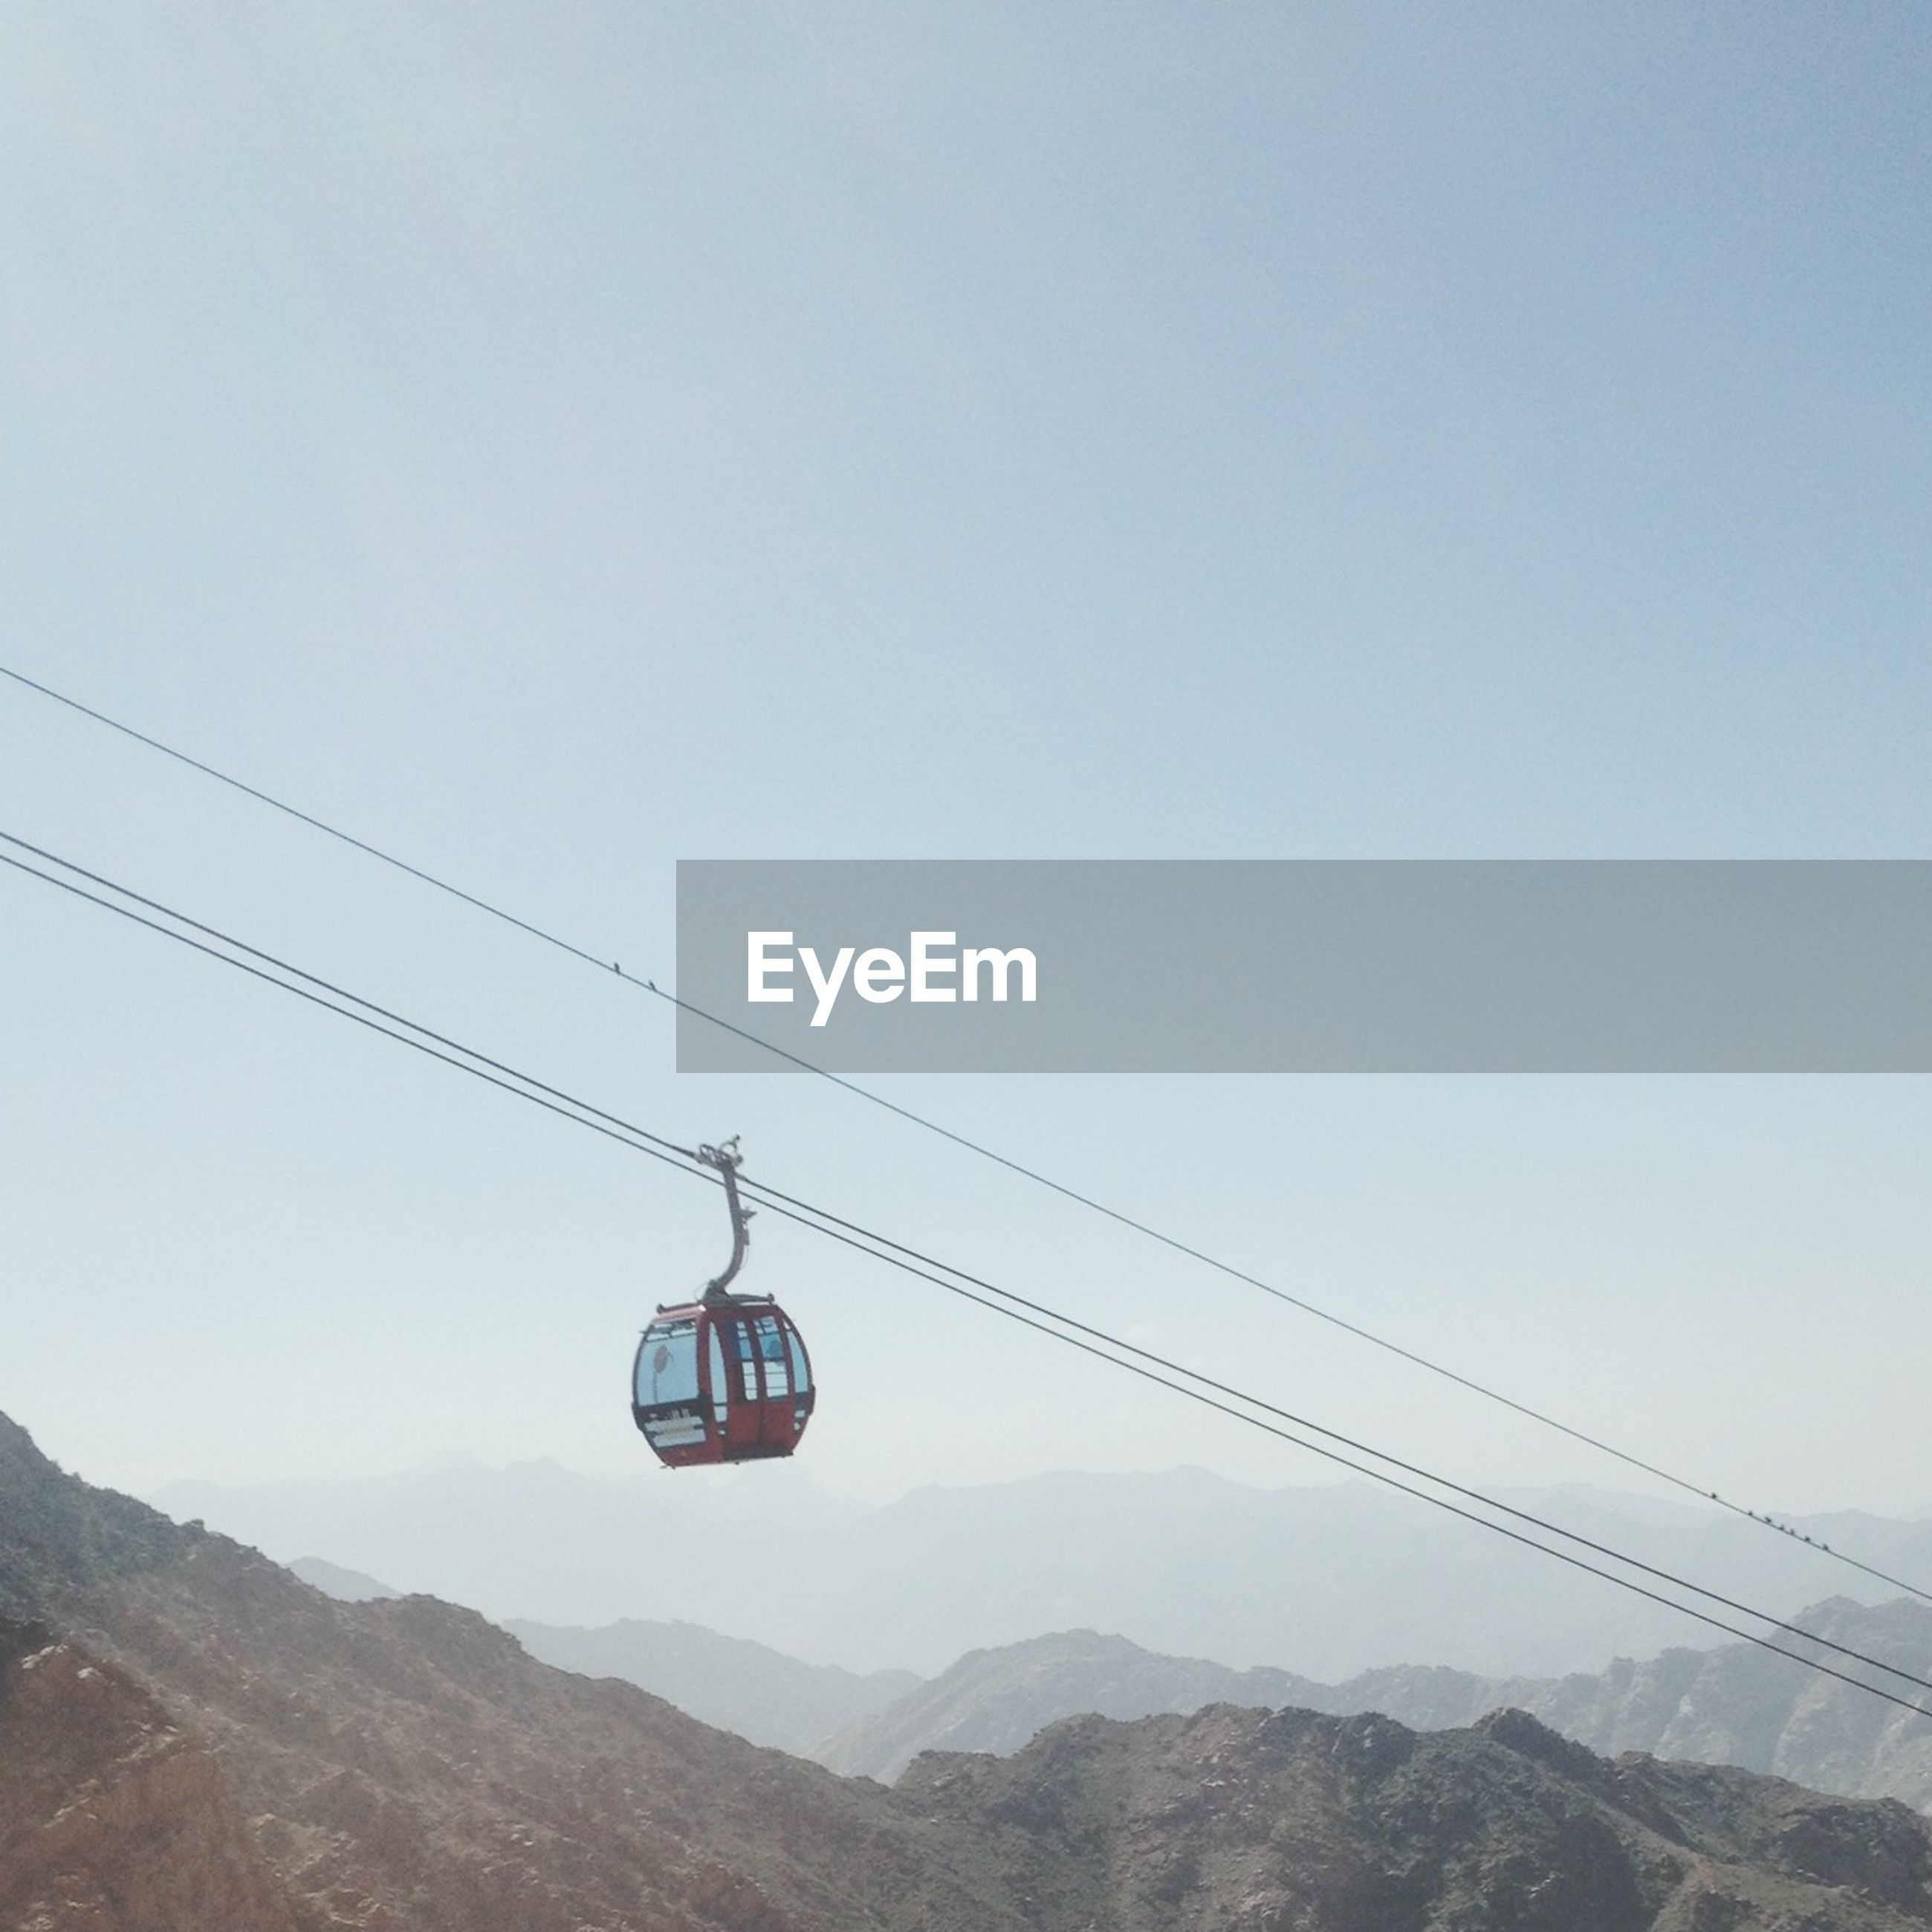 transportation, mountain, mode of transport, clear sky, copy space, adventure, overhead cable car, landscape, mountain range, extreme sports, mid-air, travel, scenics, flying, tranquility, low angle view, sky, nature, air vehicle